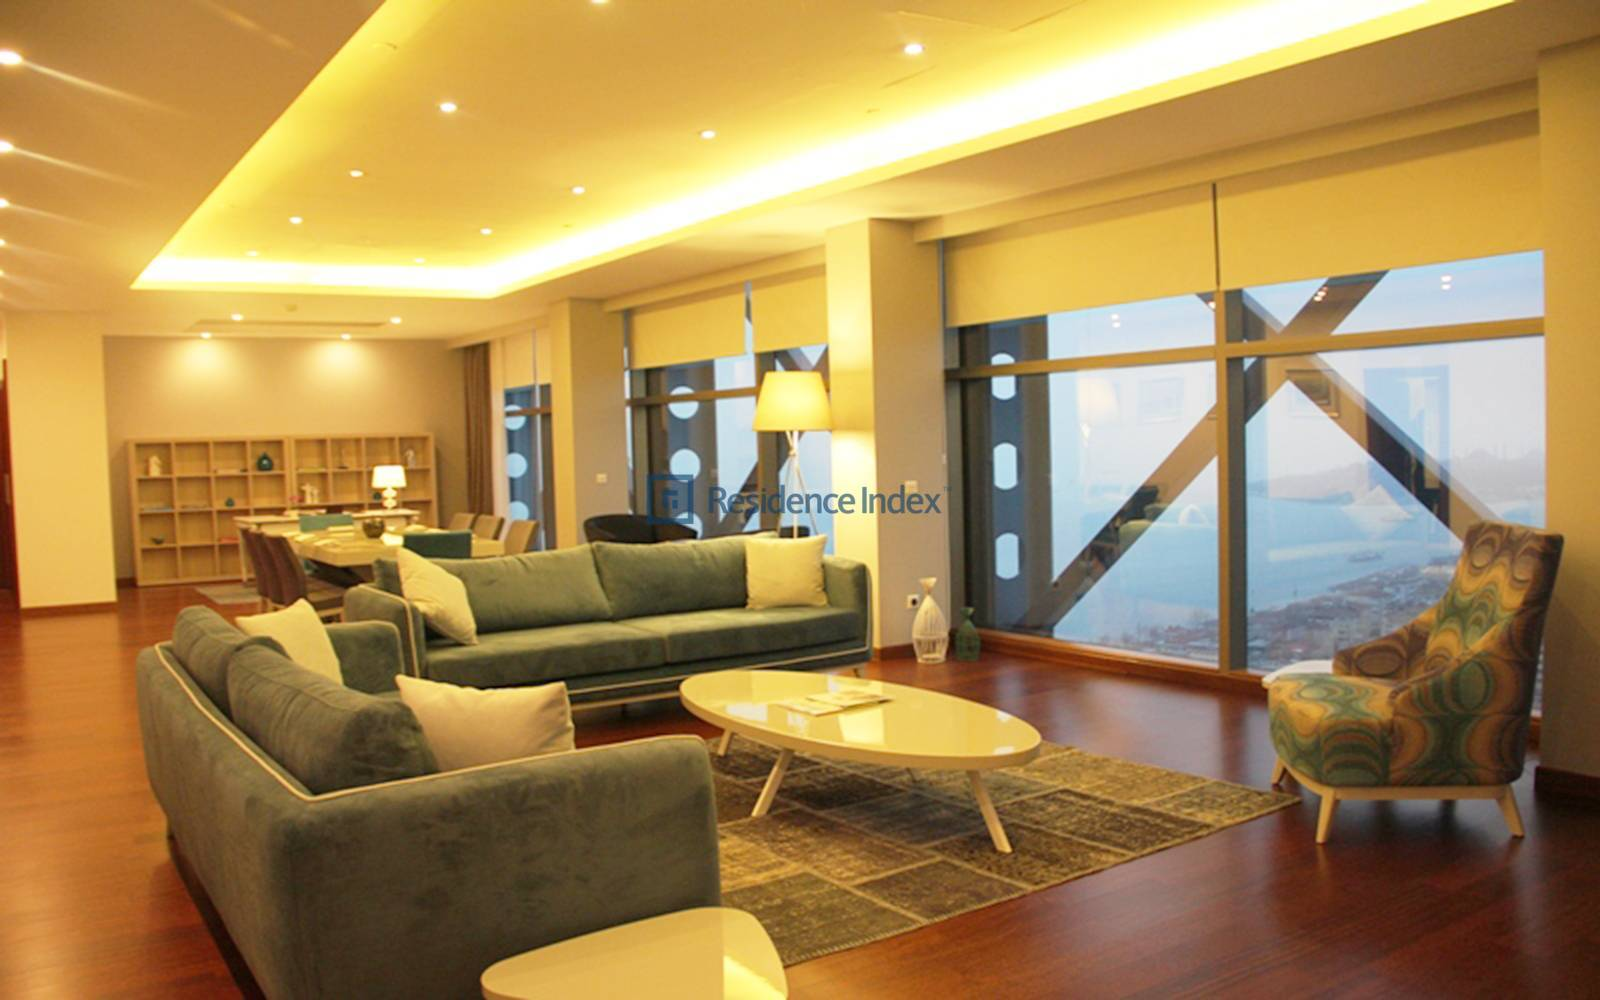 Ritz Carlton Residence - Spacious 2 + 1 Apartment with Bosphorus View on High Floor